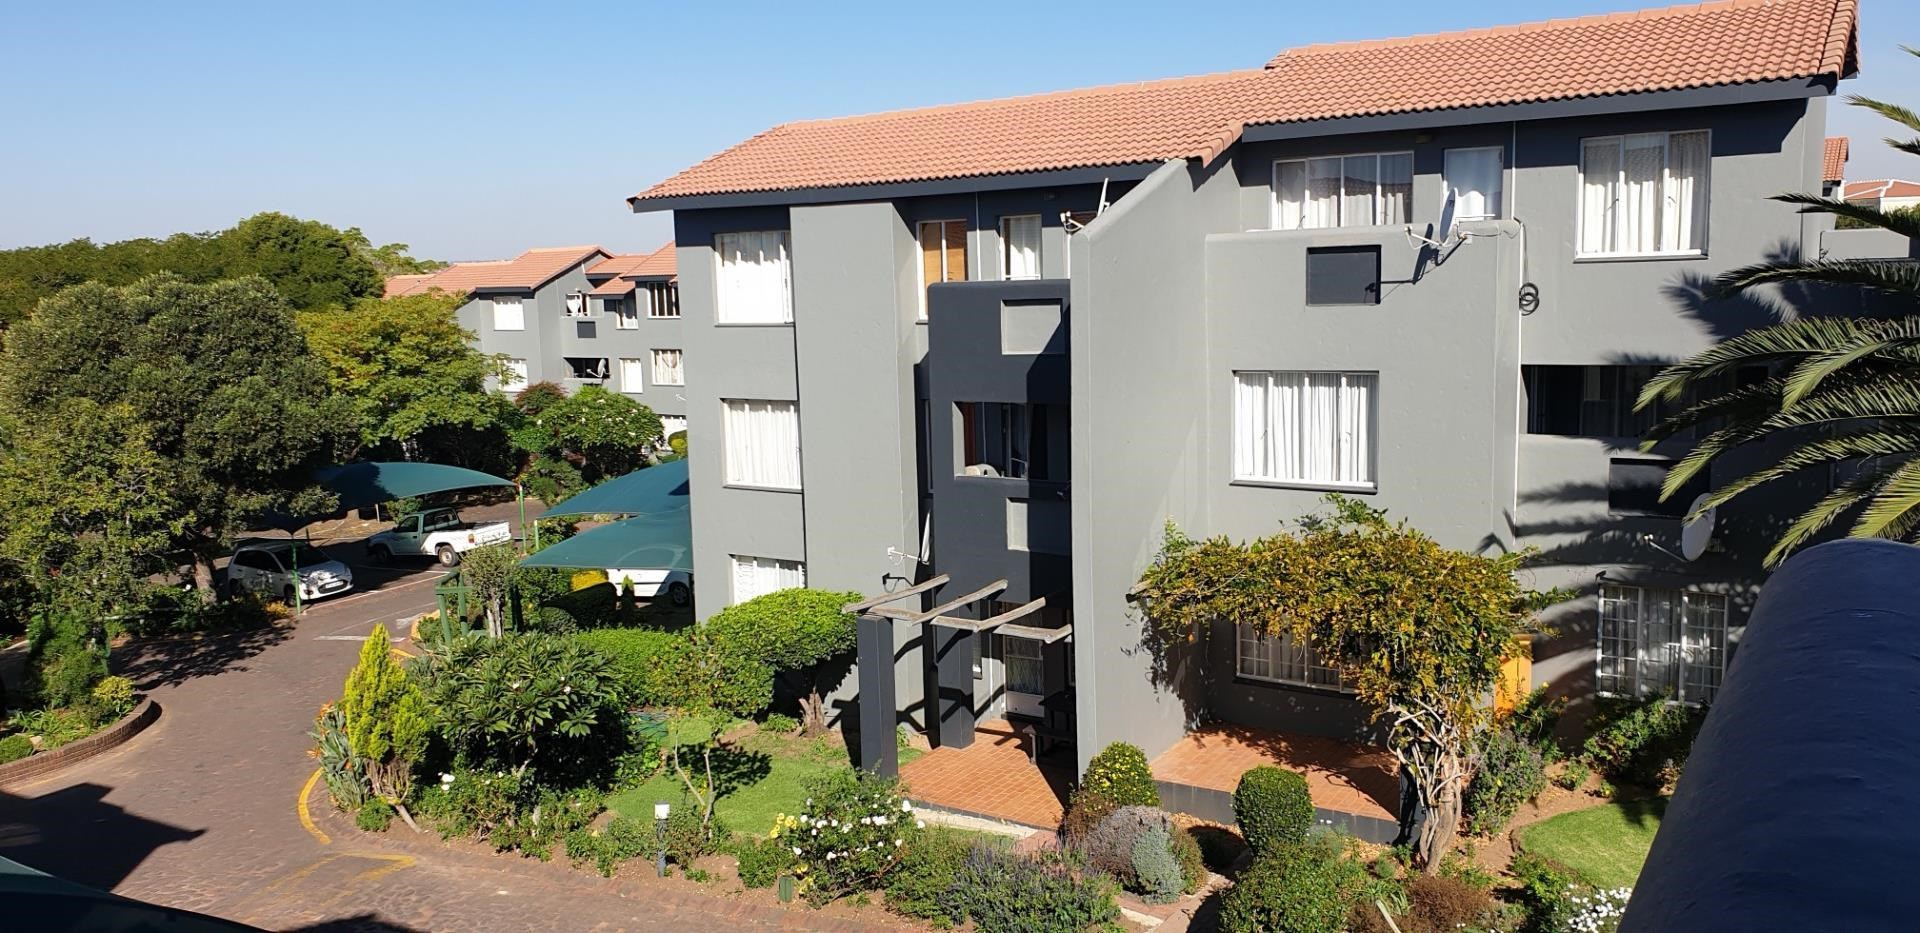 2 Bedroom Apartment for Sale in Northgate